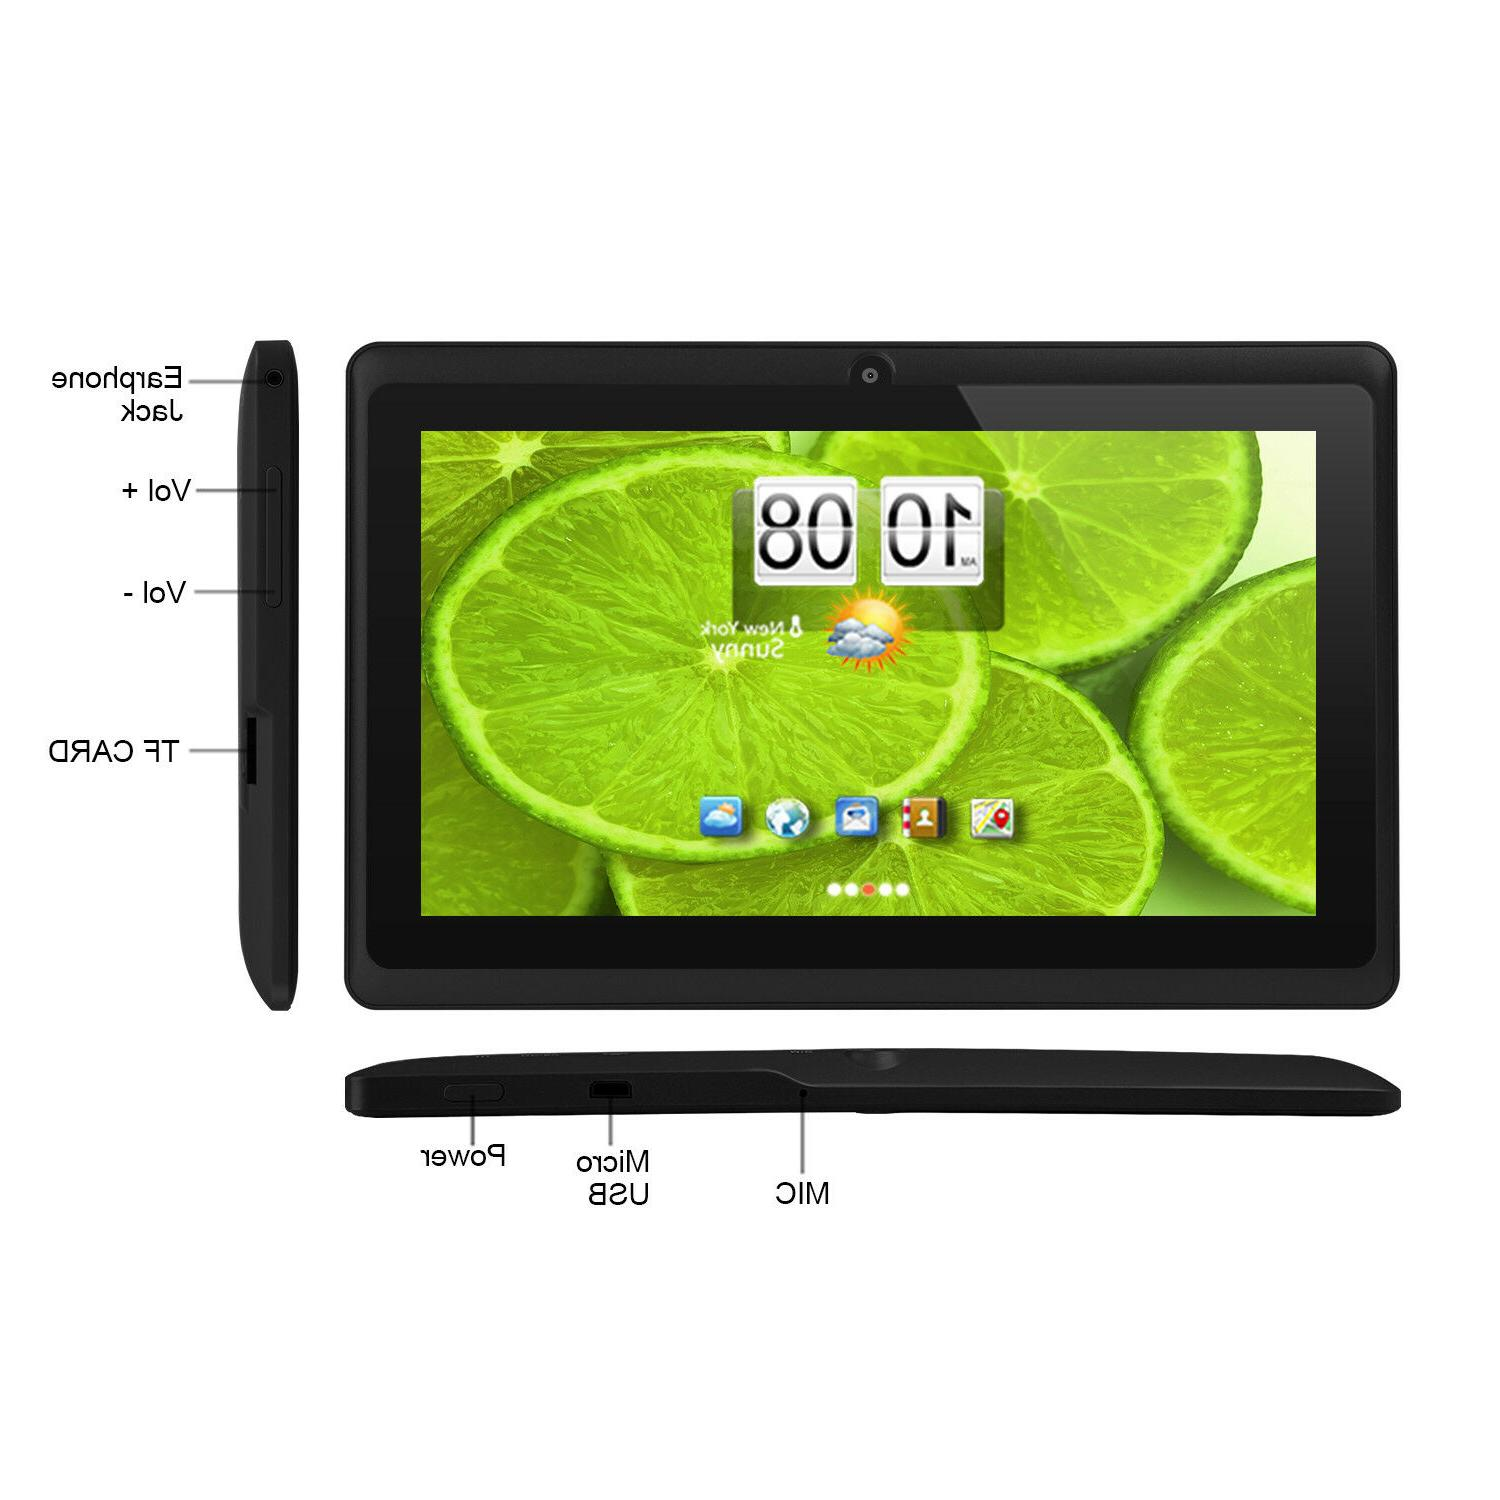 "Quad Core 7"" Android 4.4 Camera 8GB & Keyboard"